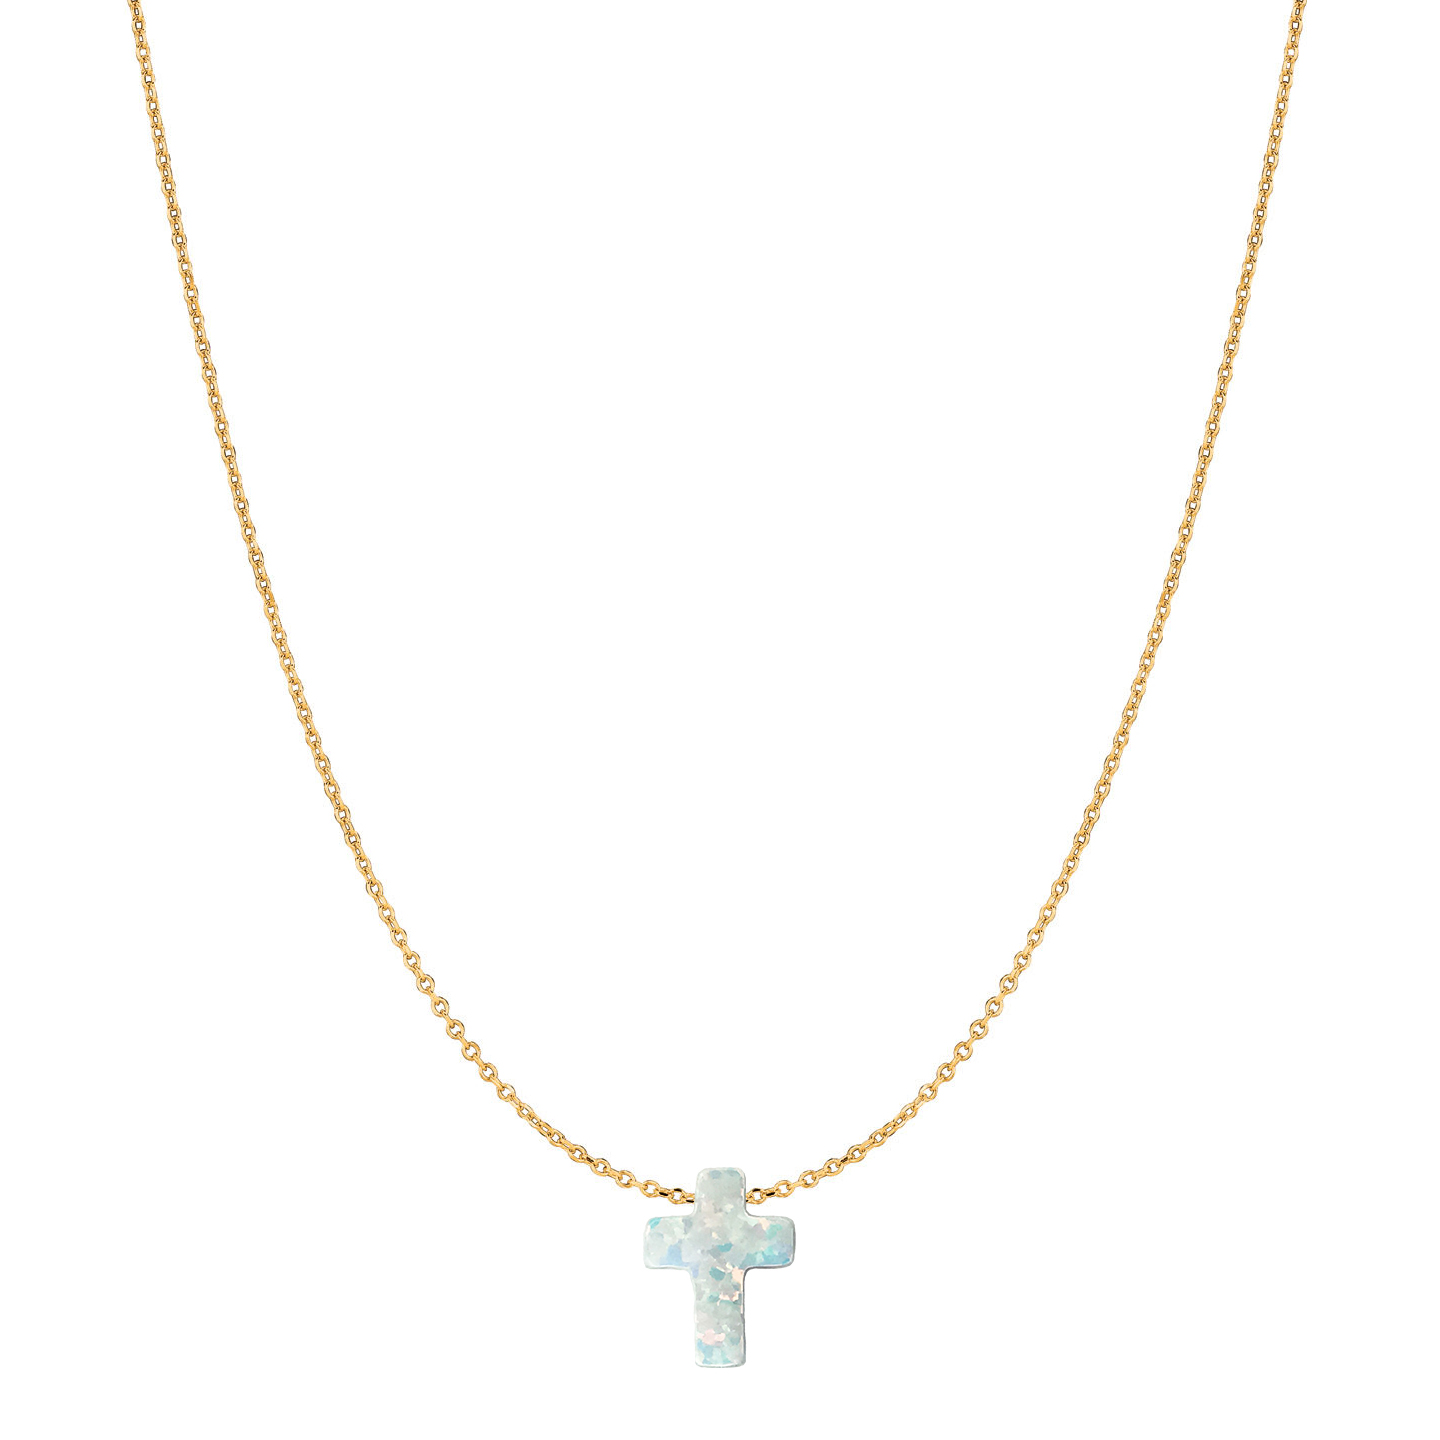 14 Karat Gold Pure White Opal Cross Necklace